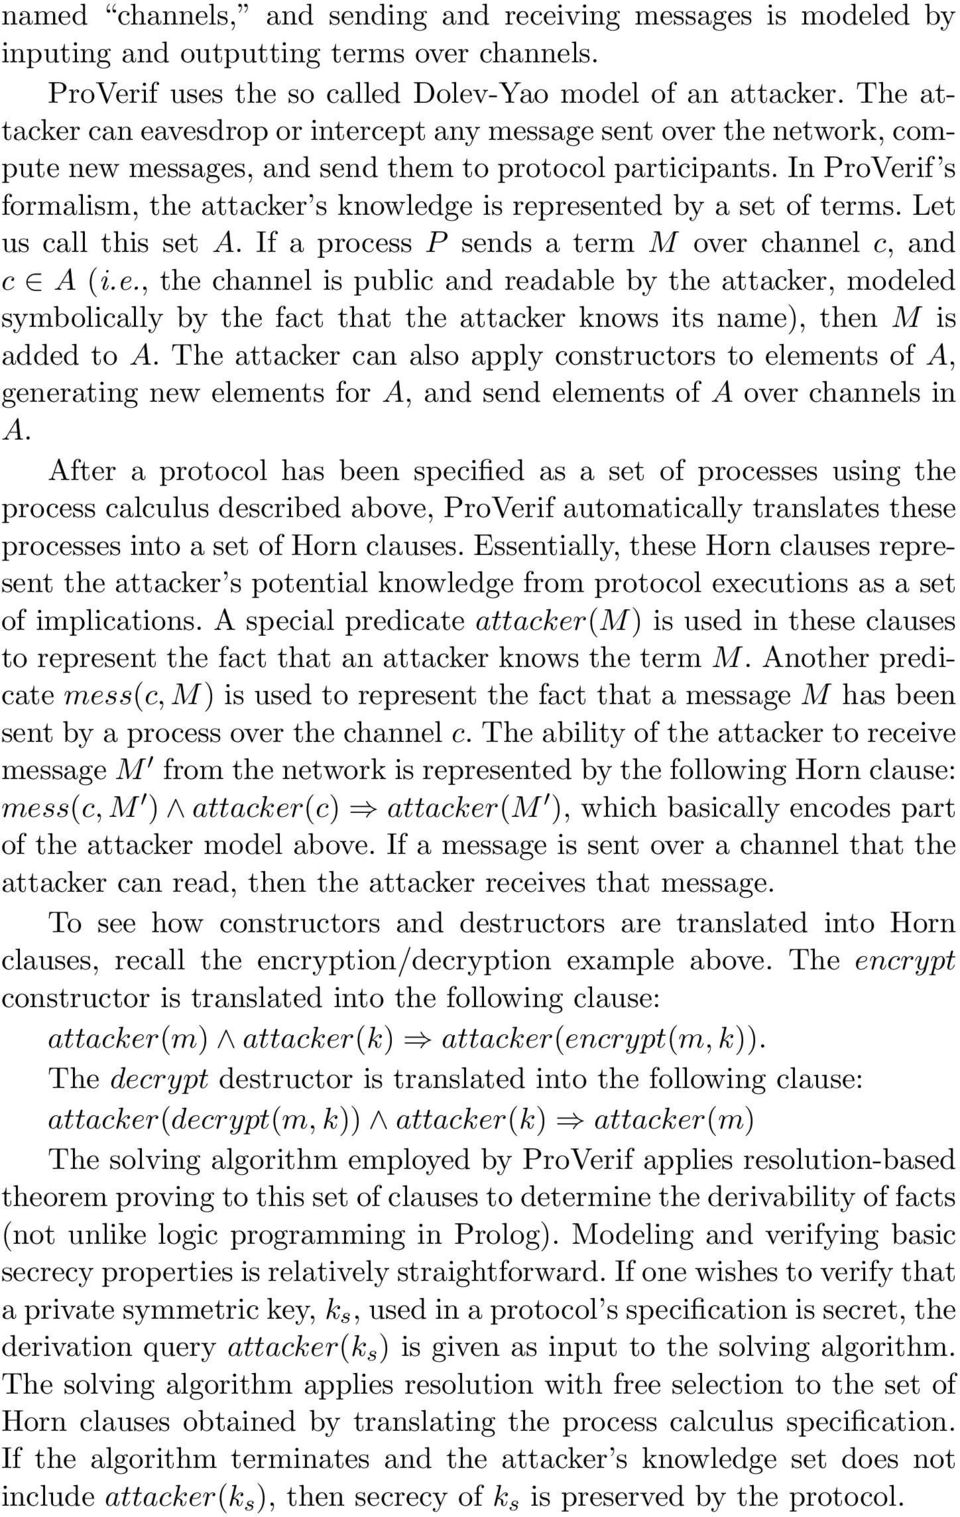 In ProVerif s formalism, the attacker s knowledge is represented by a set of terms. Let us call this set A. If a process P sends a term M over channel c, and c A (i.e., the channel is public and readable by the attacker, modeled symbolically by the fact that the attacker knows its name), then M is added to A.